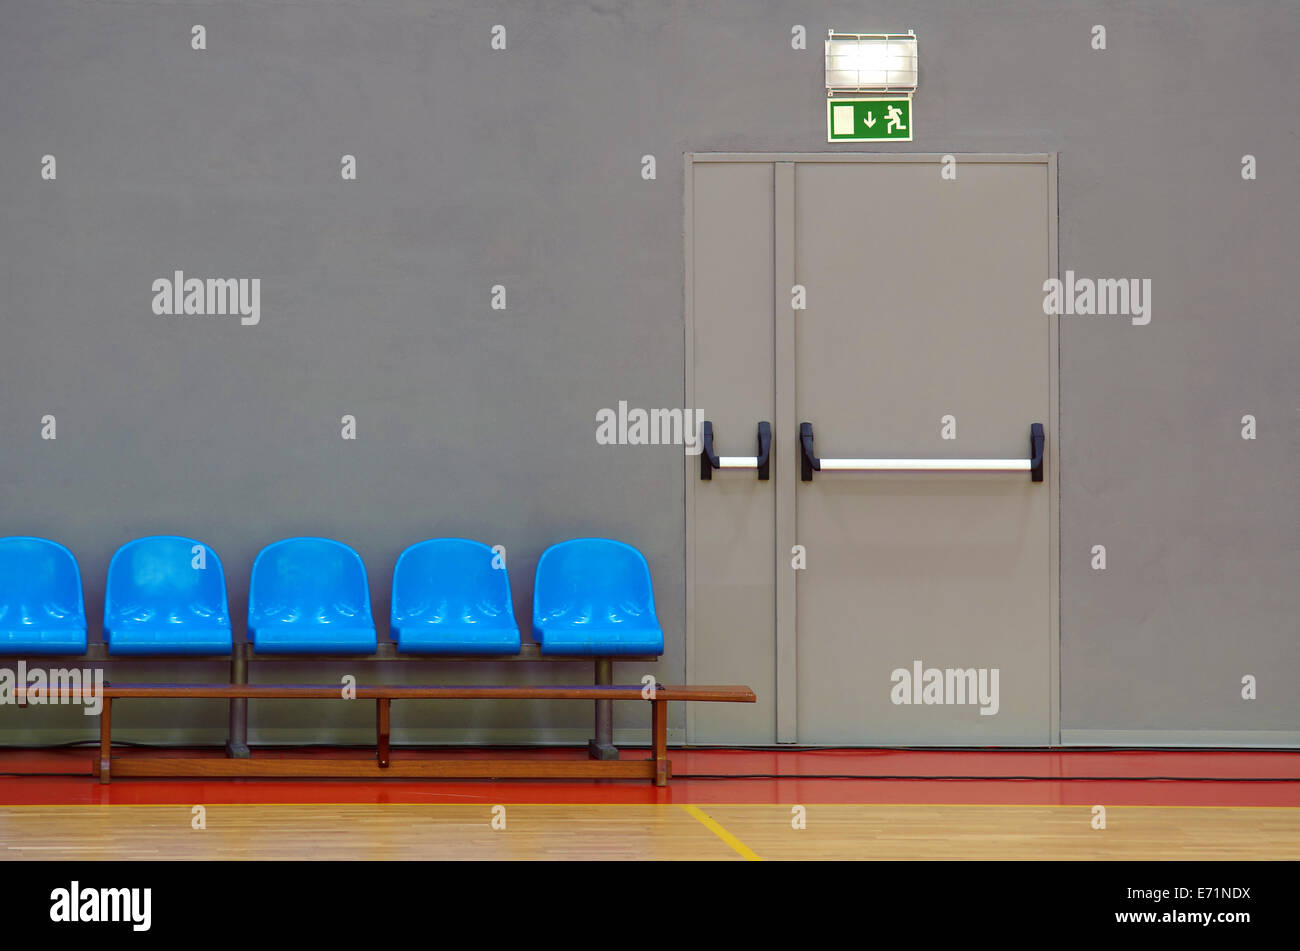 Emergency exit door next to a row of blue sits in a sports pavilion - Stock Image